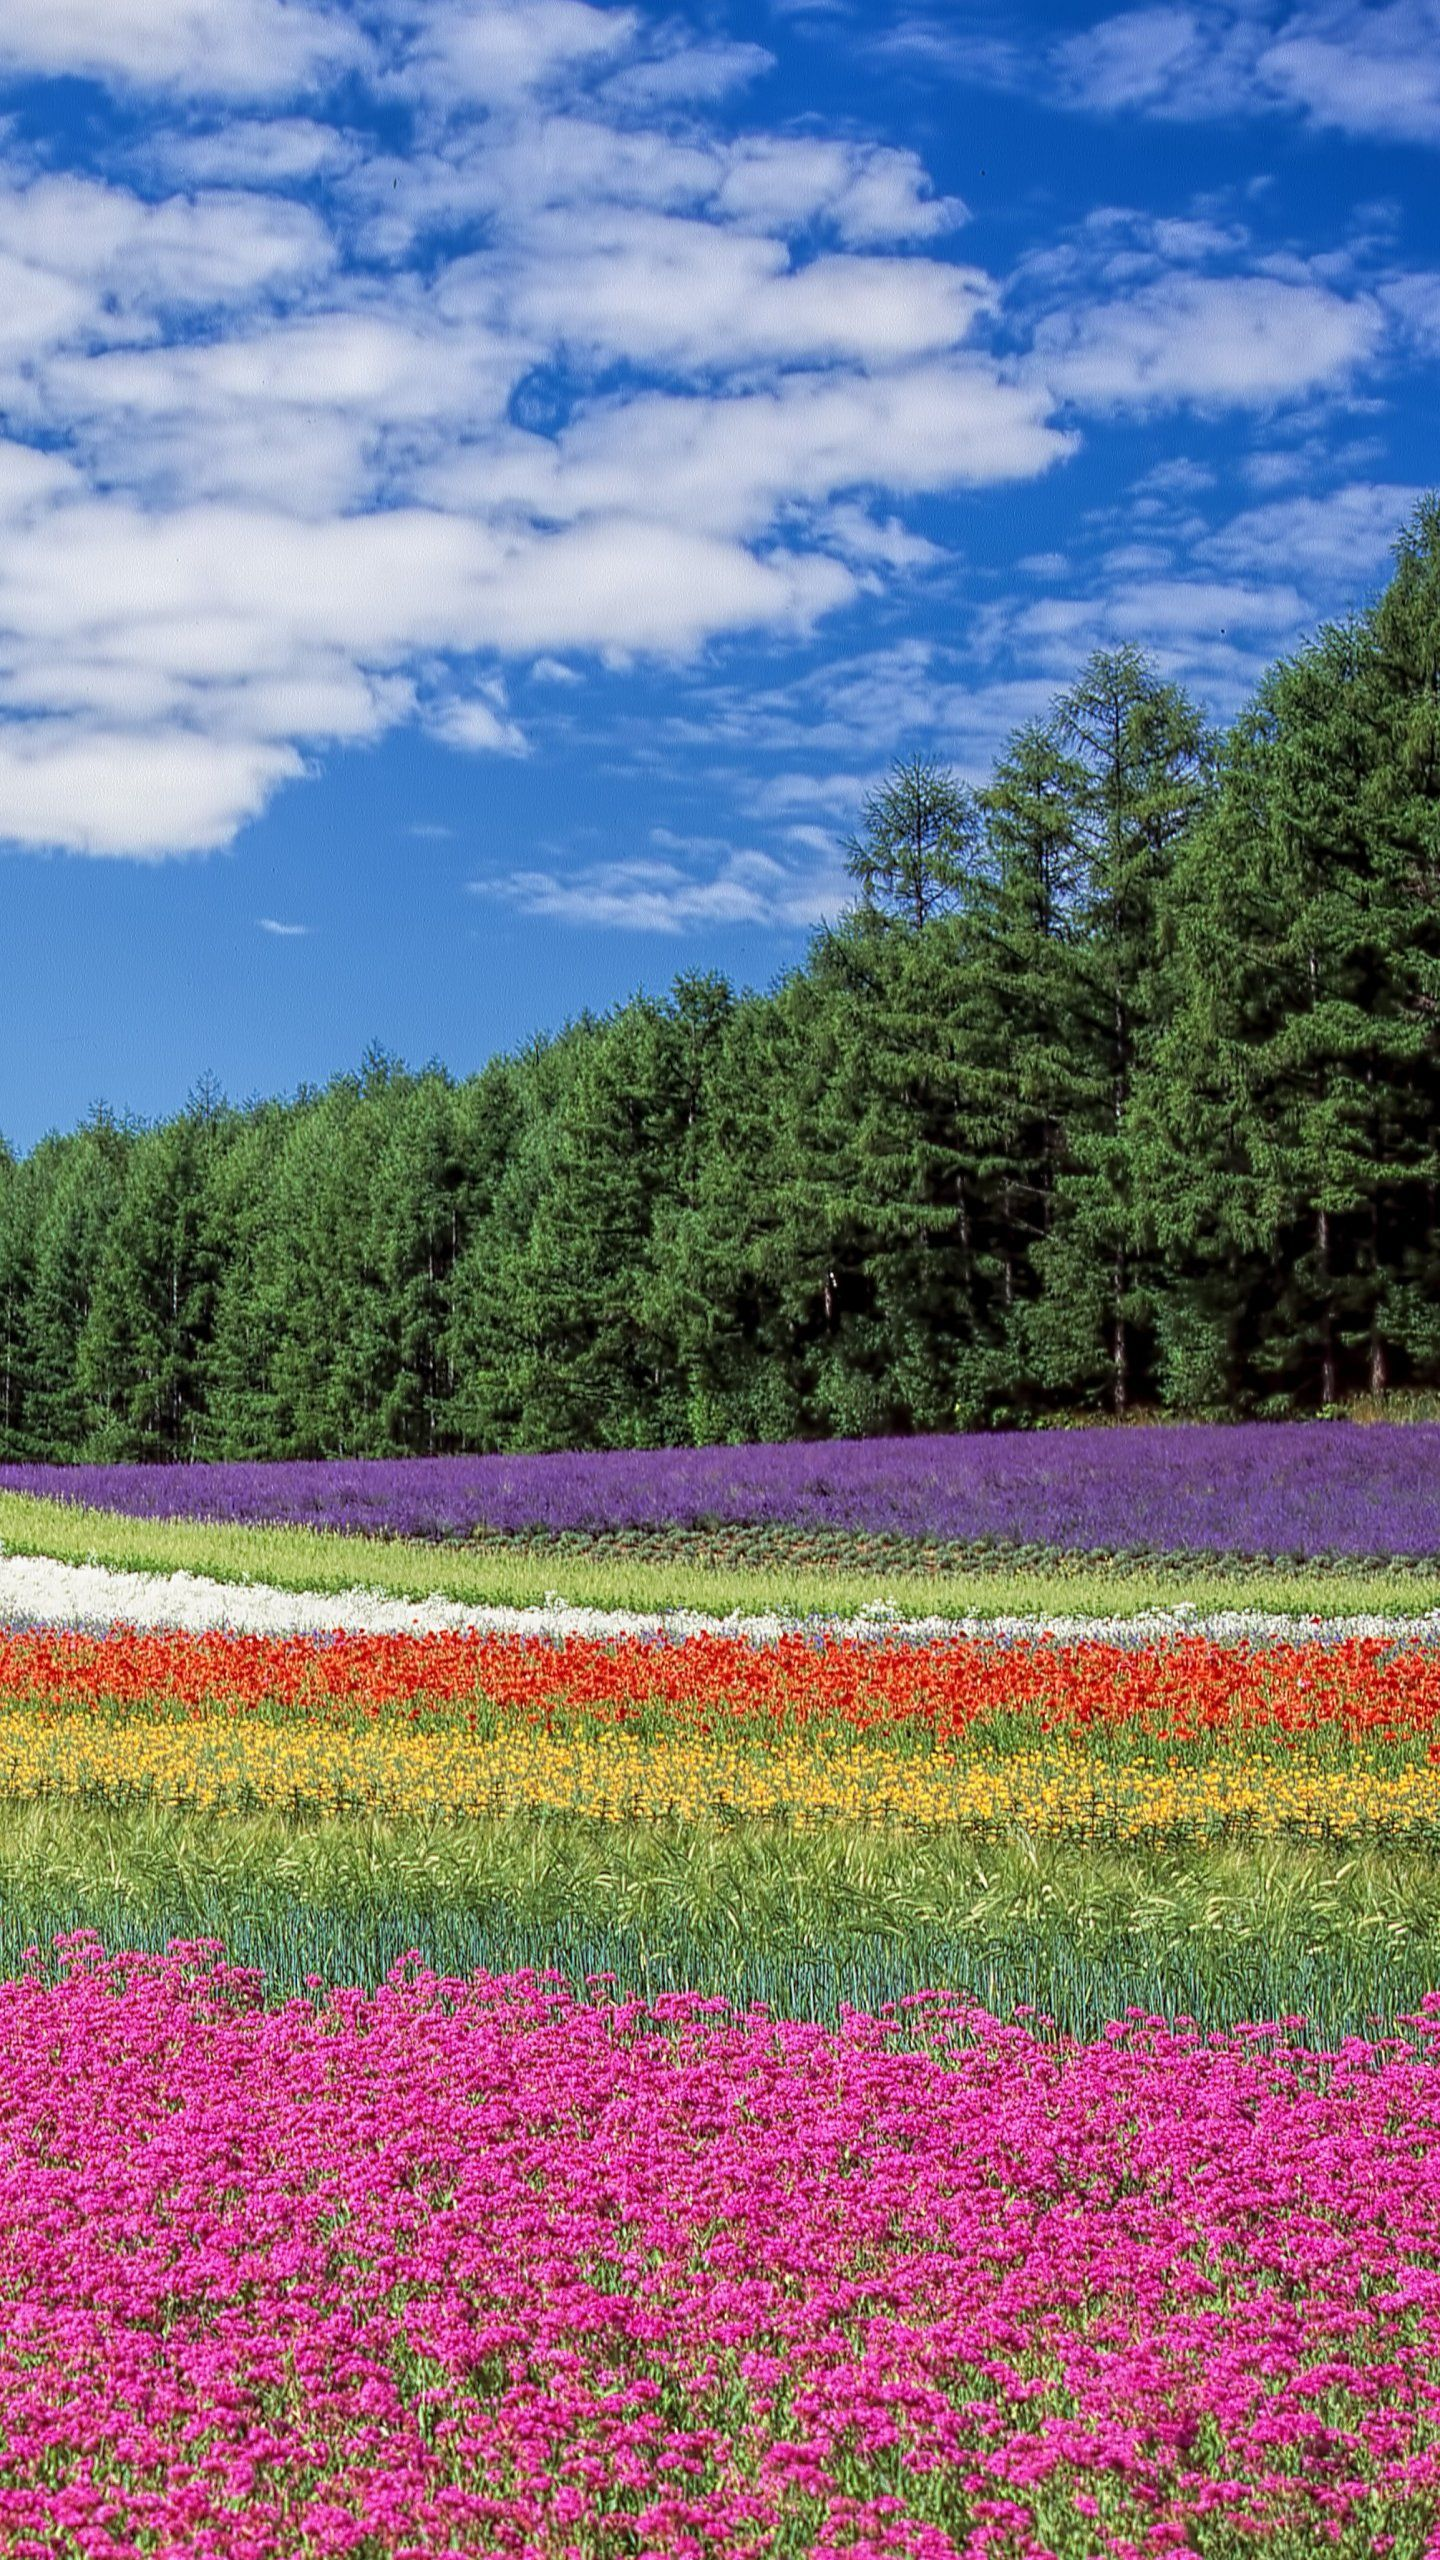 Field Of Flowers Wallpaper Iphone Android Desktop Backgrounds Photography Inspiration Nature Nature Iphone Wallpaper Flower Beds Diy